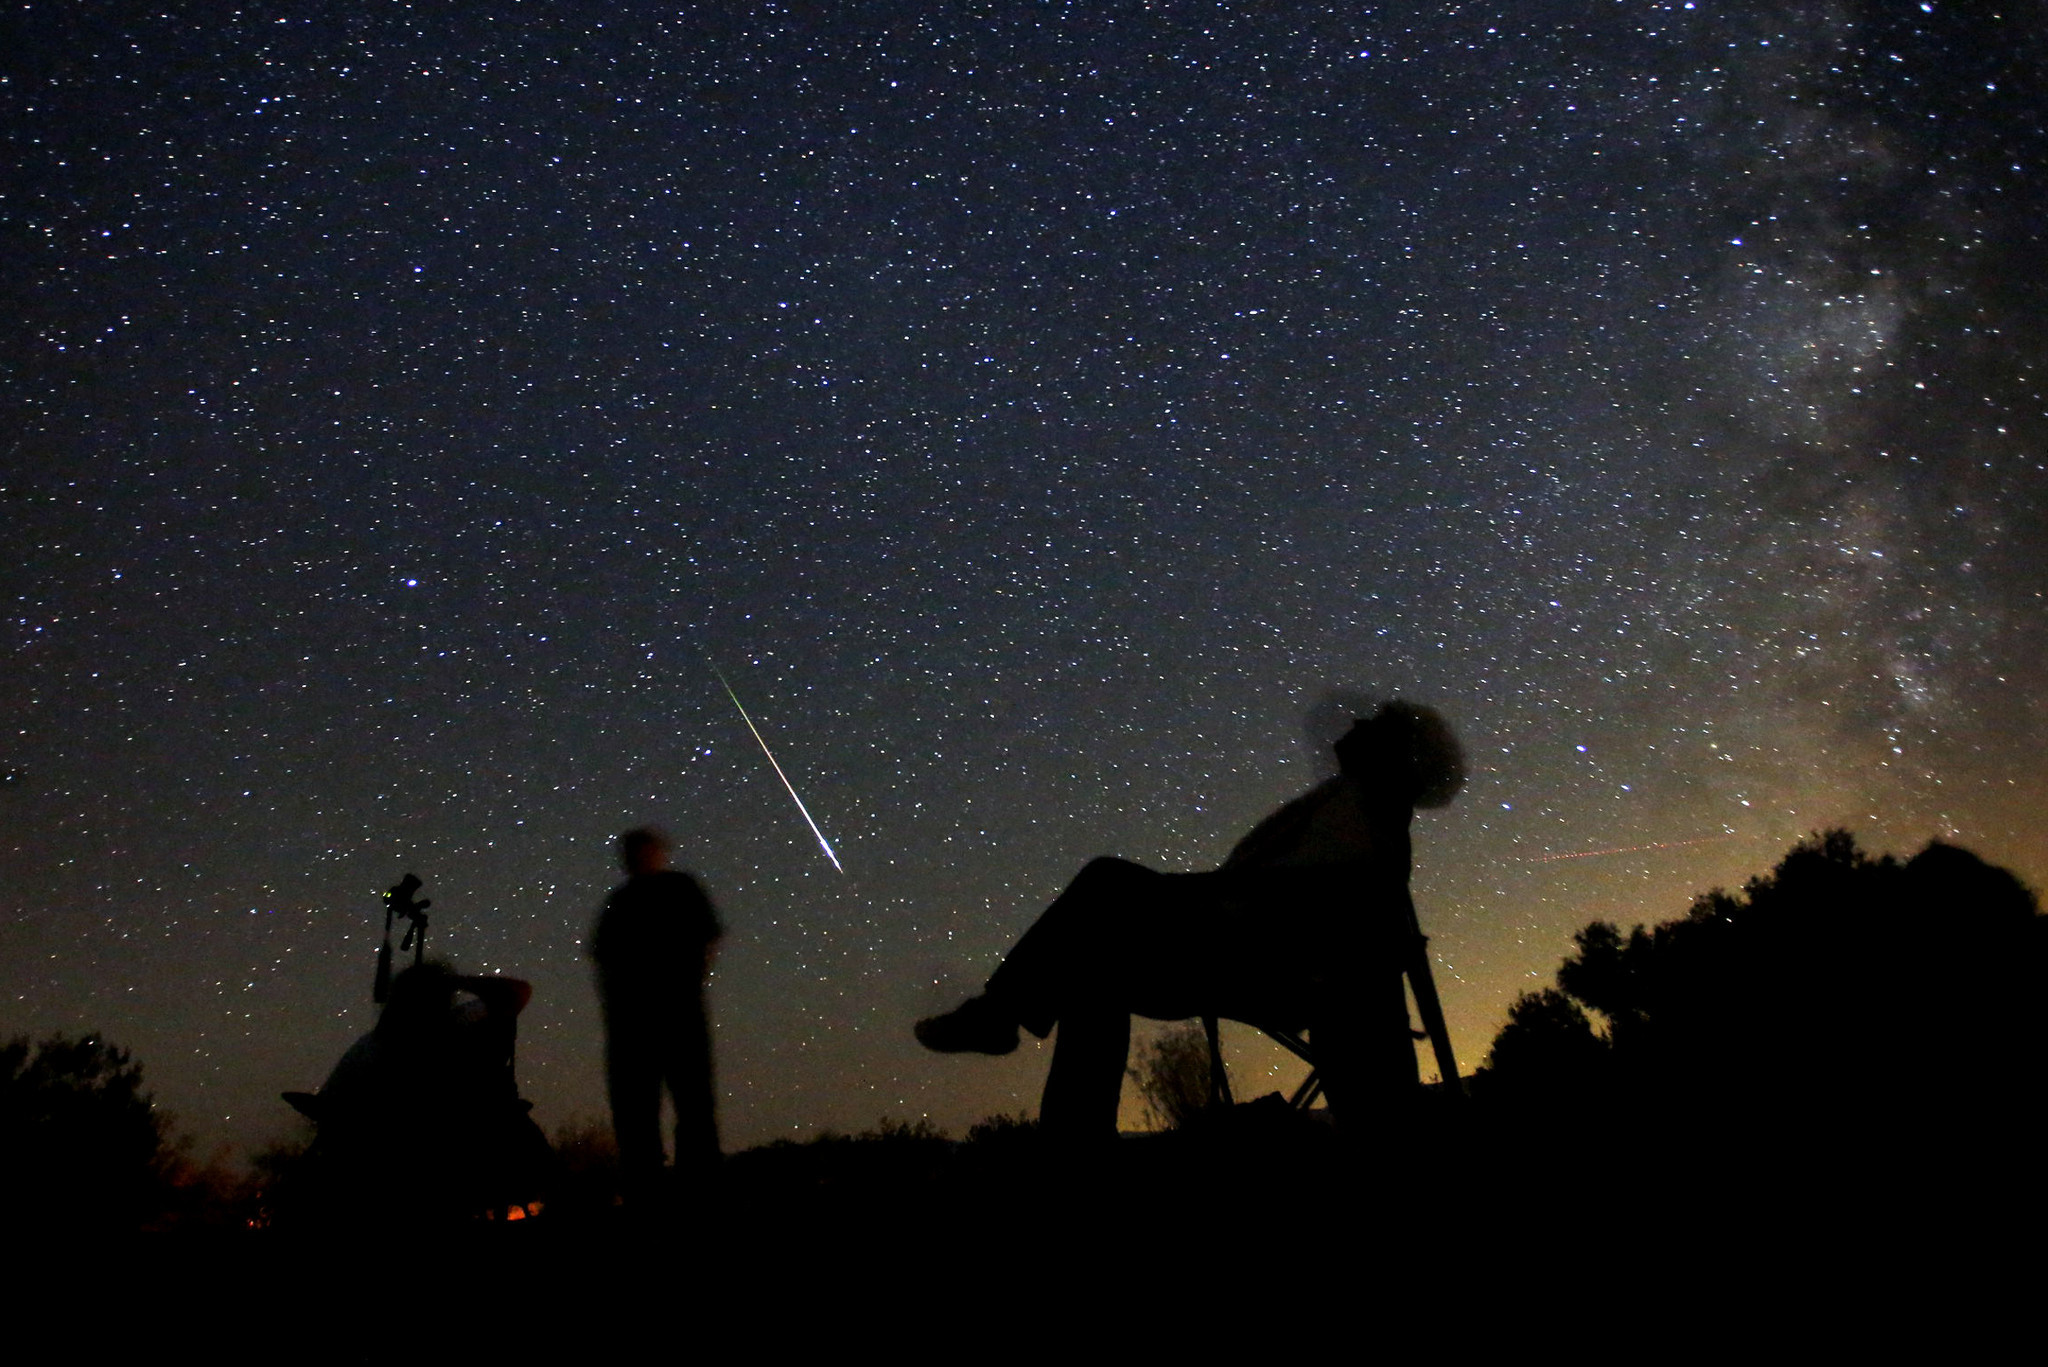 Falling From Stars Wallpaper The Five Best Places To Watch The Perseid Meteor Showers